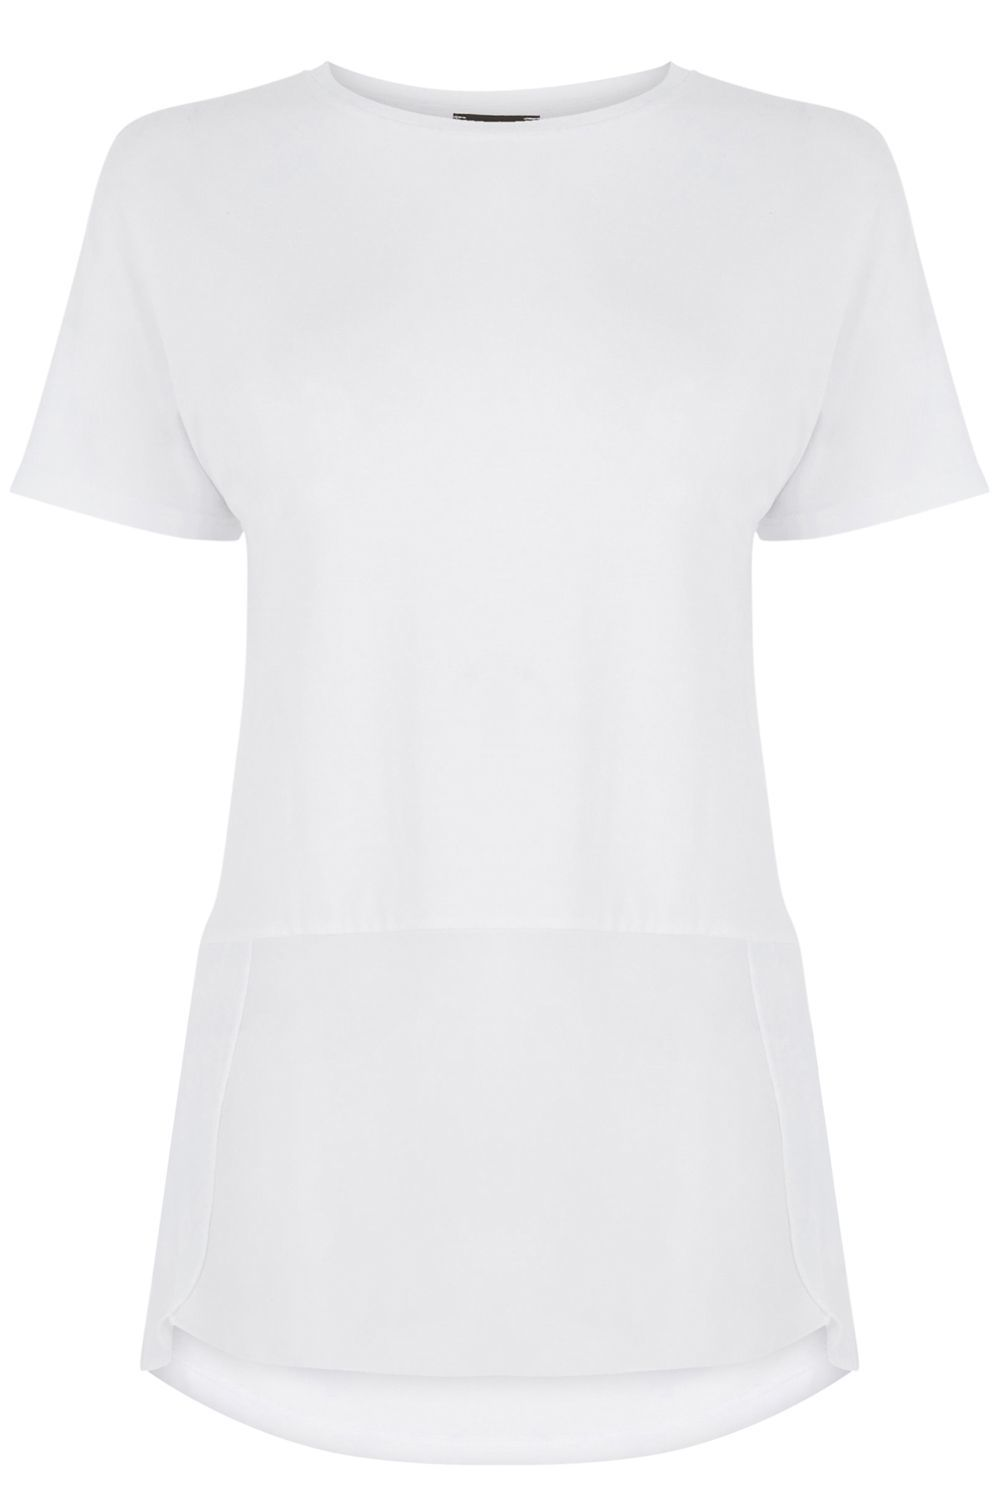 Woven Mix Short Sleeved Top, White - neckline: round neck; pattern: plain; length: below the bottom; predominant colour: white; occasions: casual, creative work; style: top; fibres: polyester/polyamide - 100%; fit: body skimming; sleeve length: short sleeve; sleeve style: standard; pattern type: fabric; texture group: jersey - stretchy/drapey; season: s/s 2016